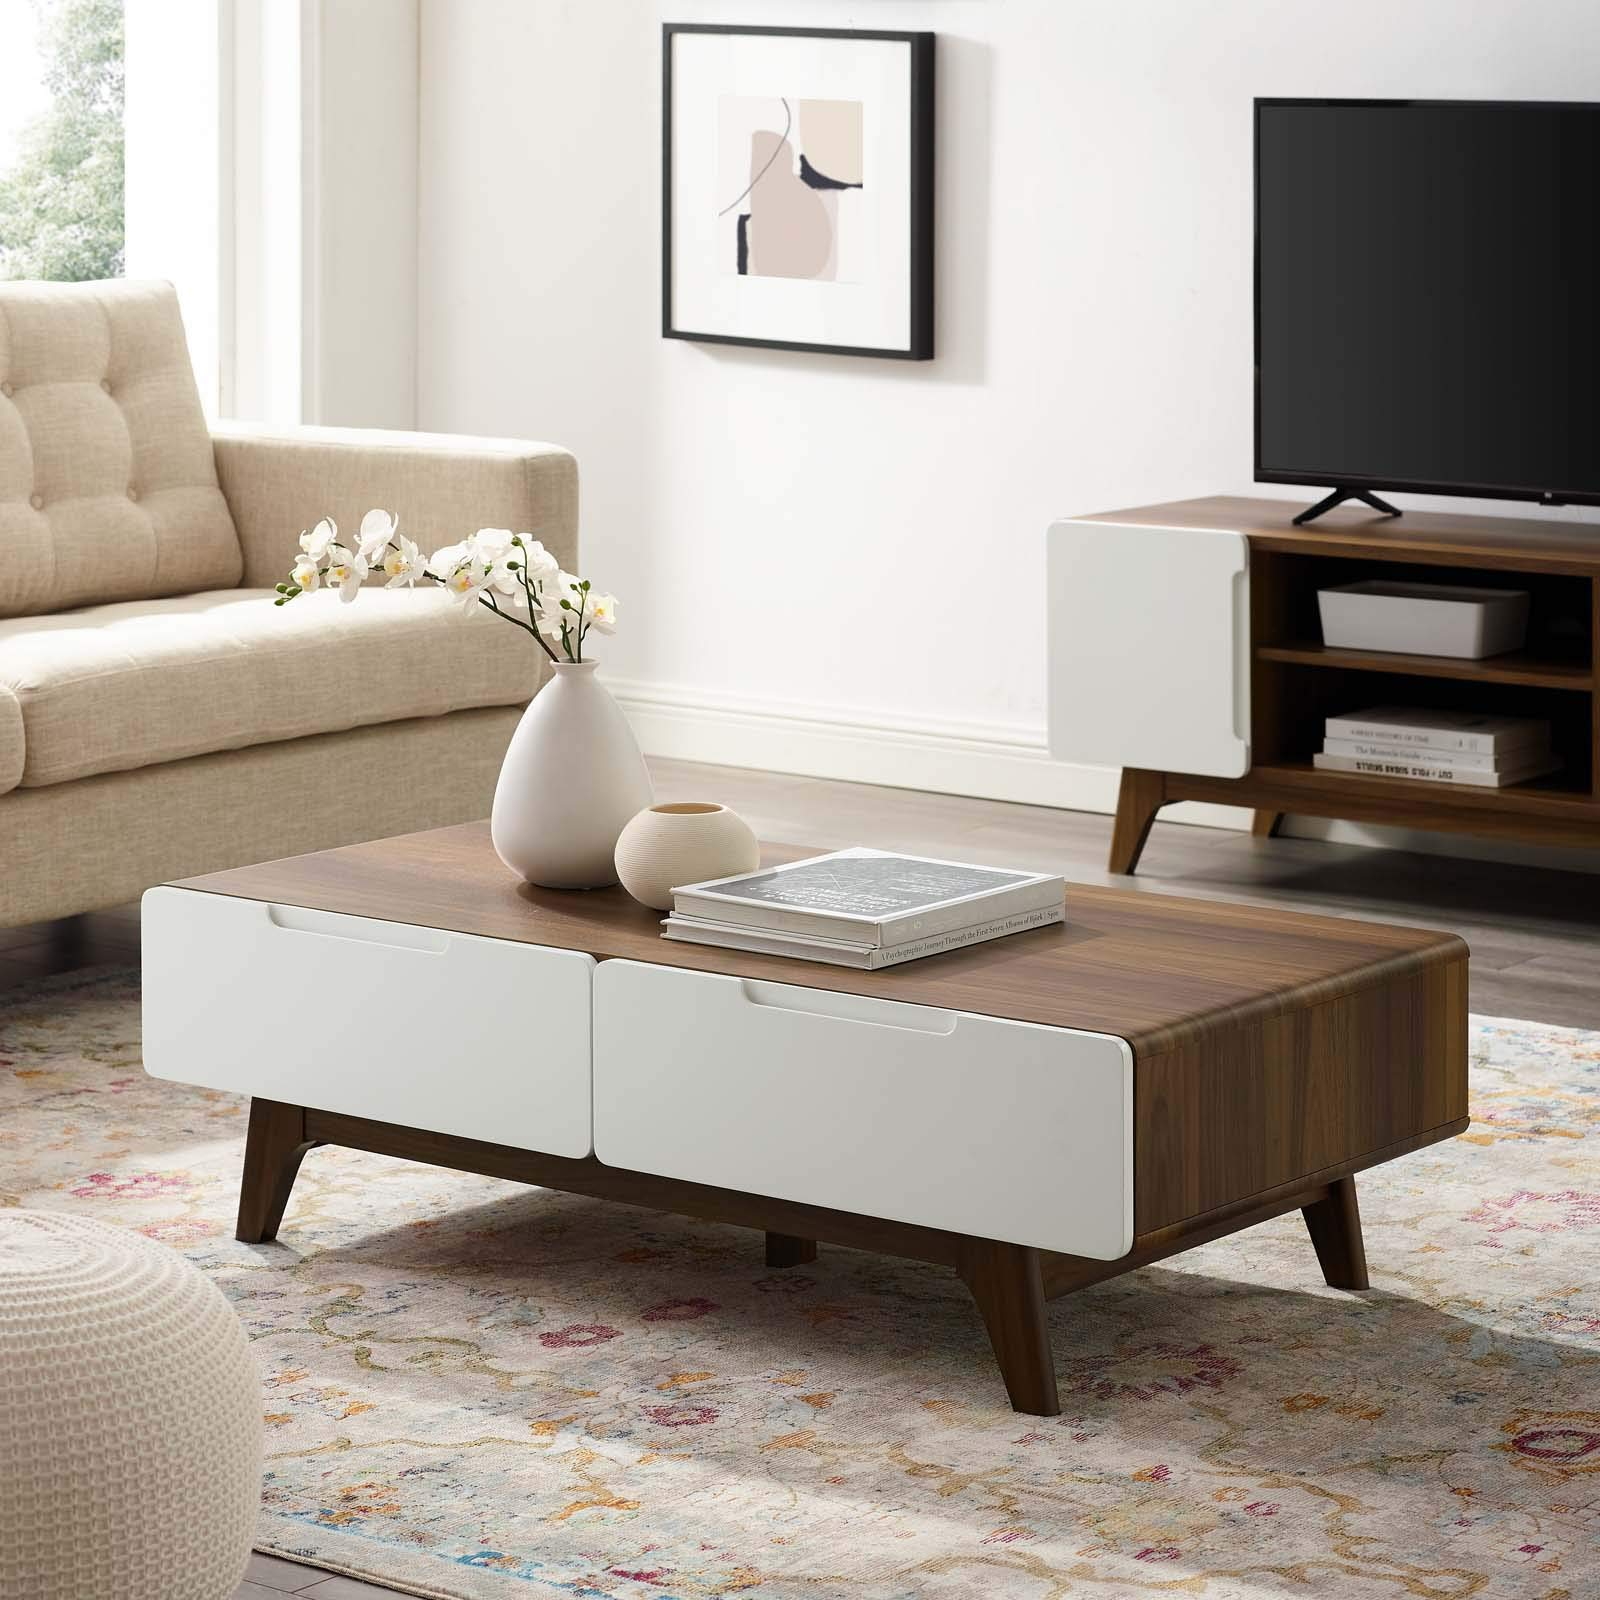 Modway Origin 47'' Mid-Century Modern Wood Coffee Table In Walnut White by Modway